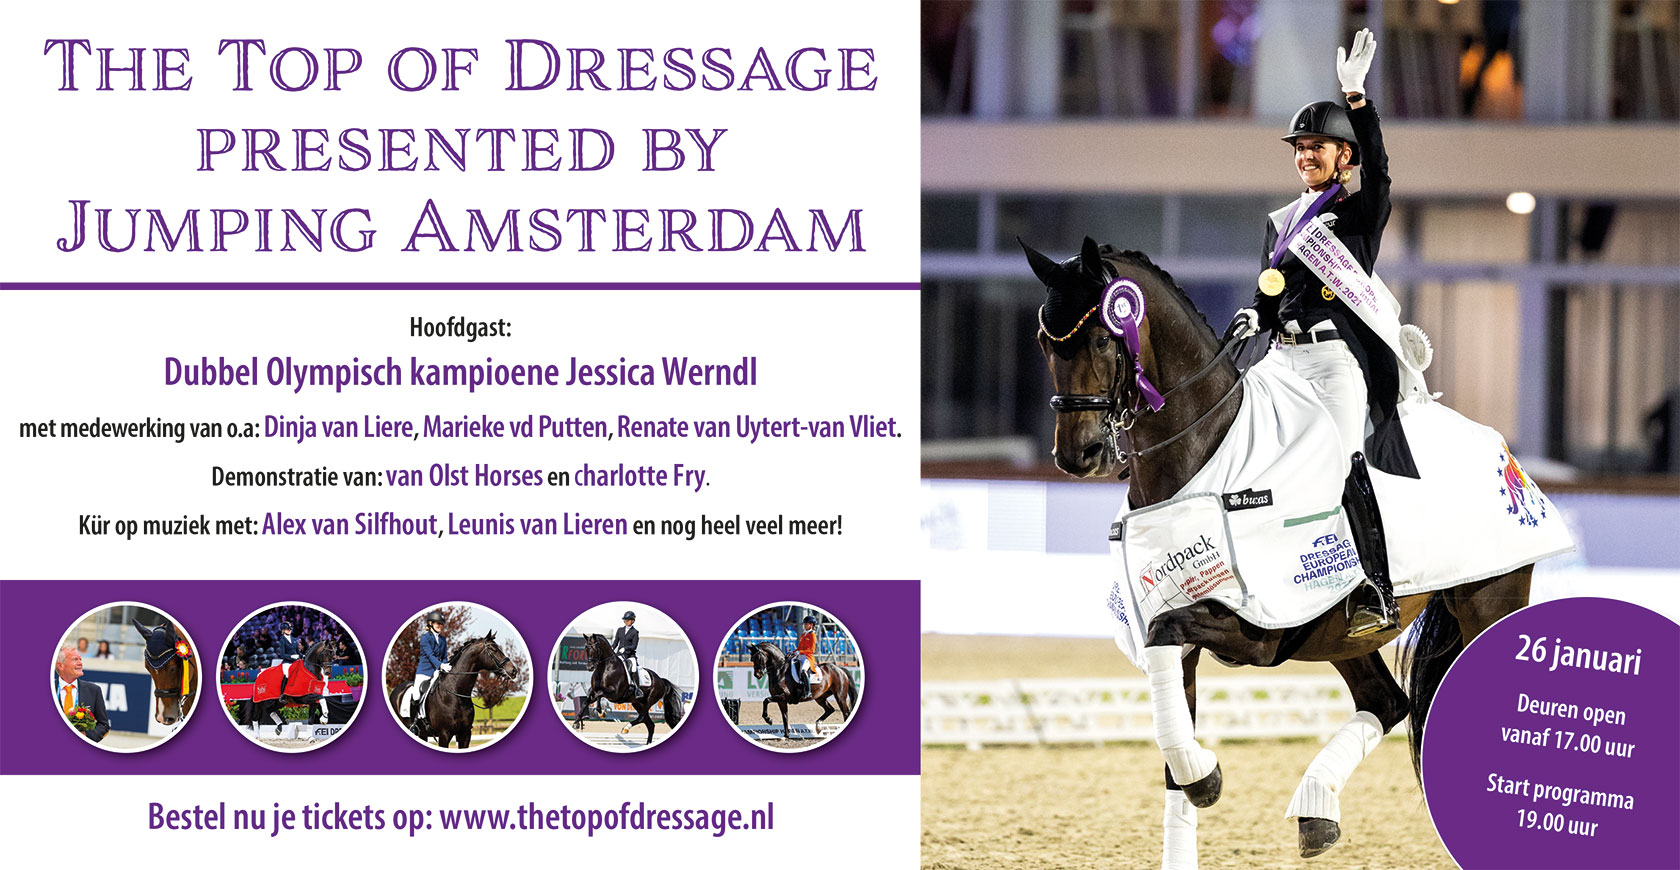 The top of dressage presented by Jumping Amsterdam